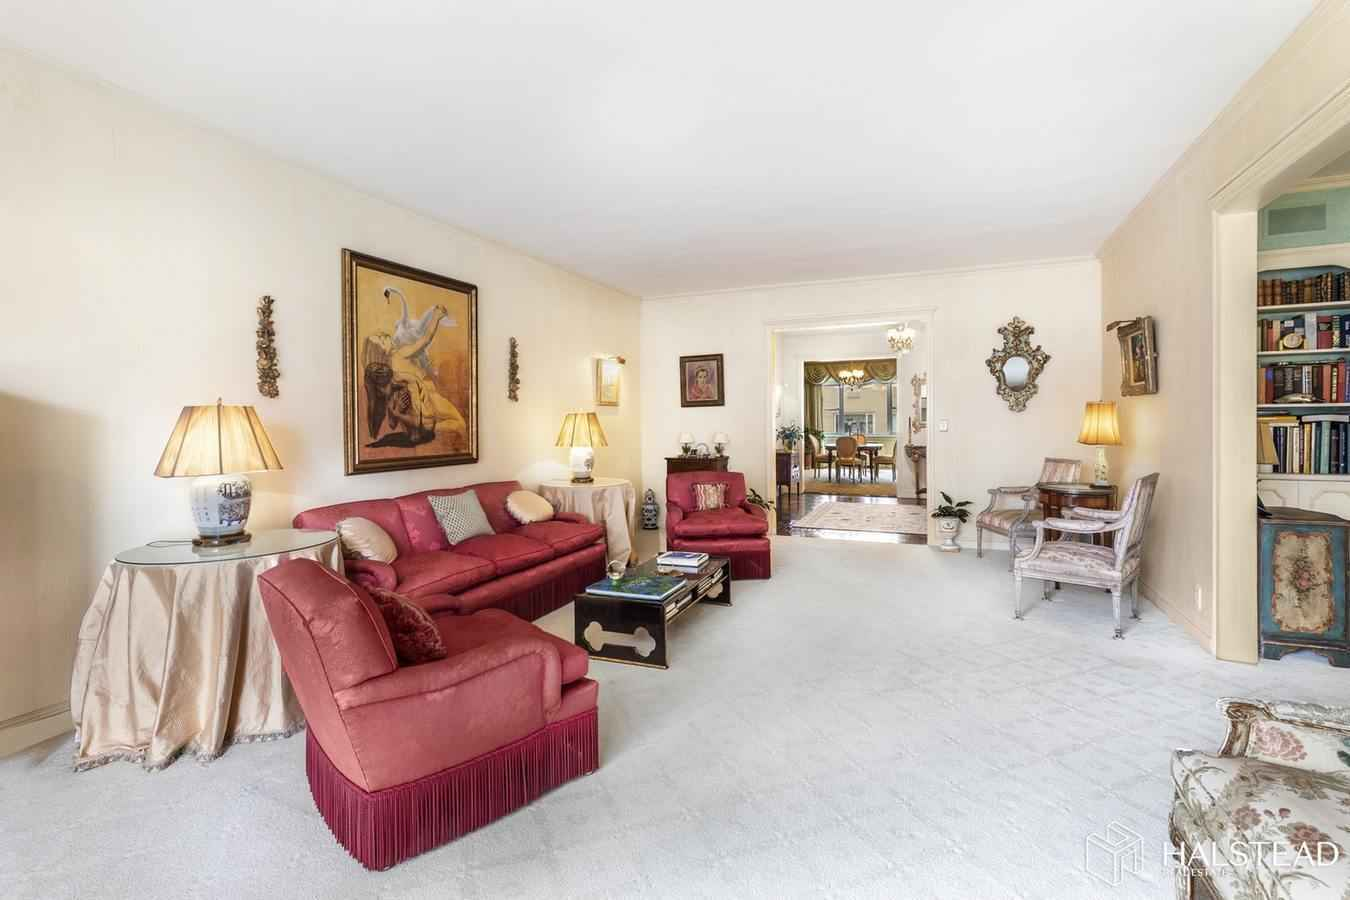 Apartment for sale at 175 East 62nd Street, Apt 15D